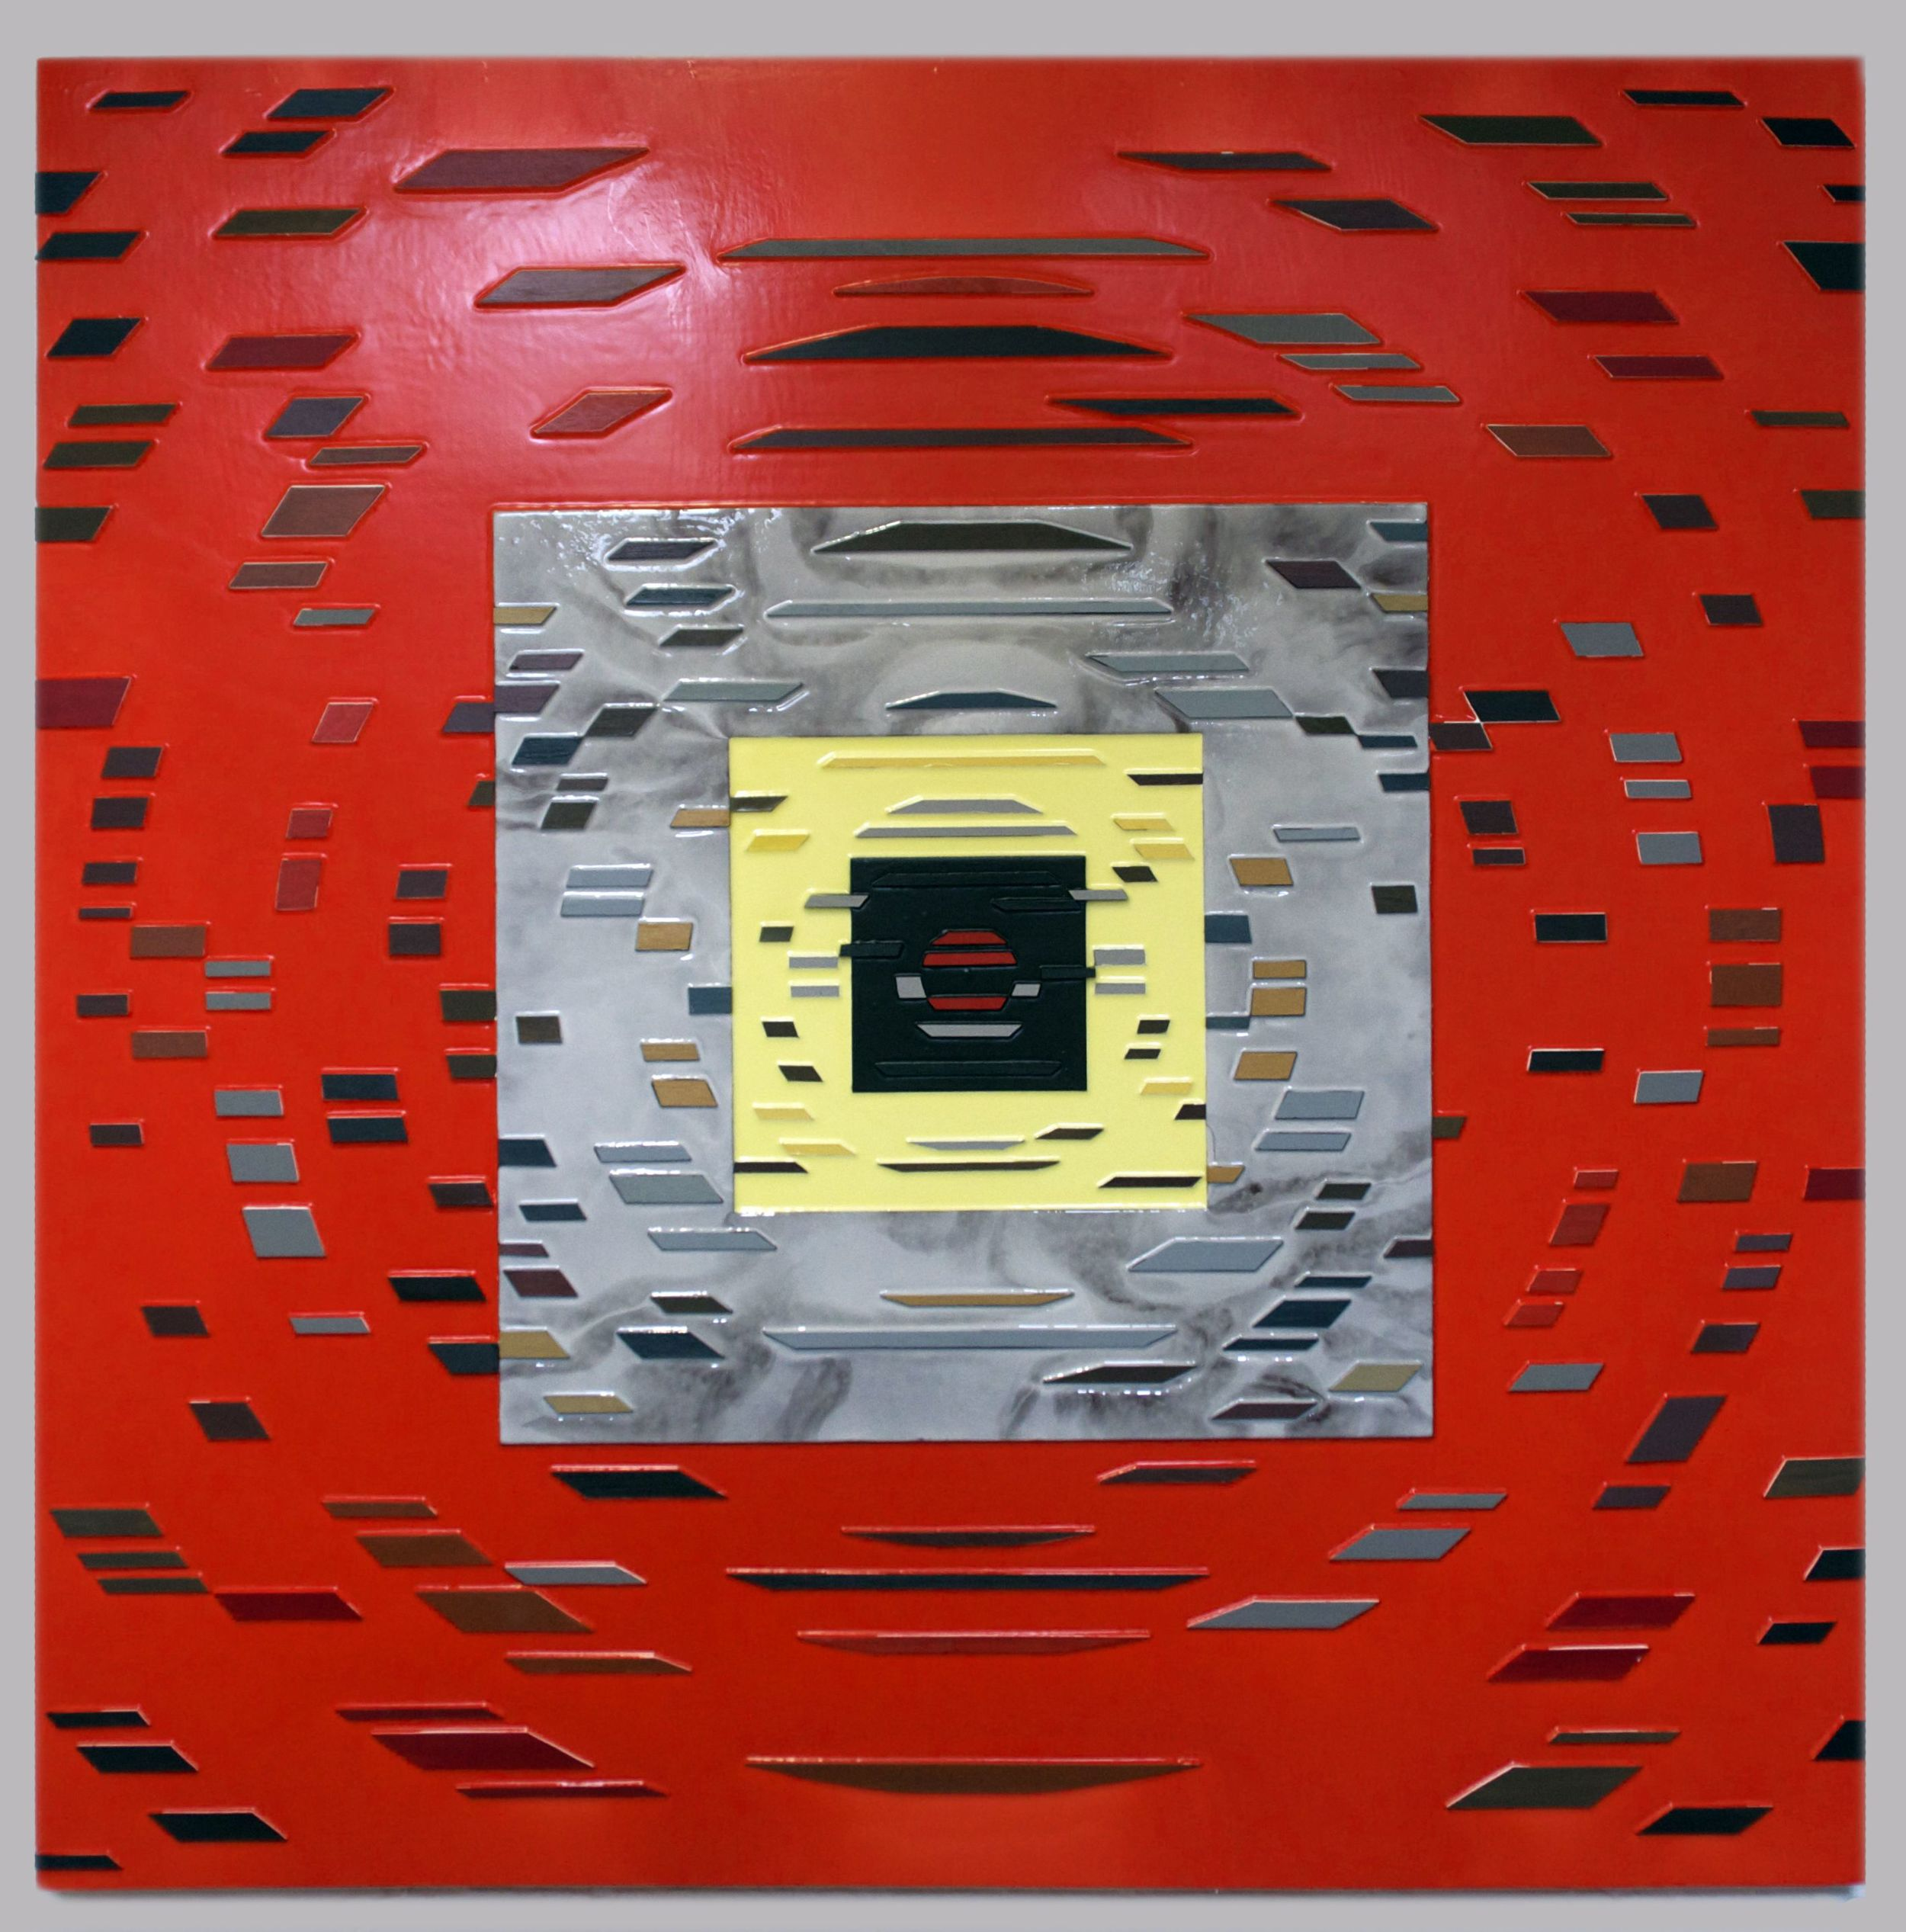 'Into the Red' Poured acrylic paint and wood on panel, 60 x 60 in, 2012